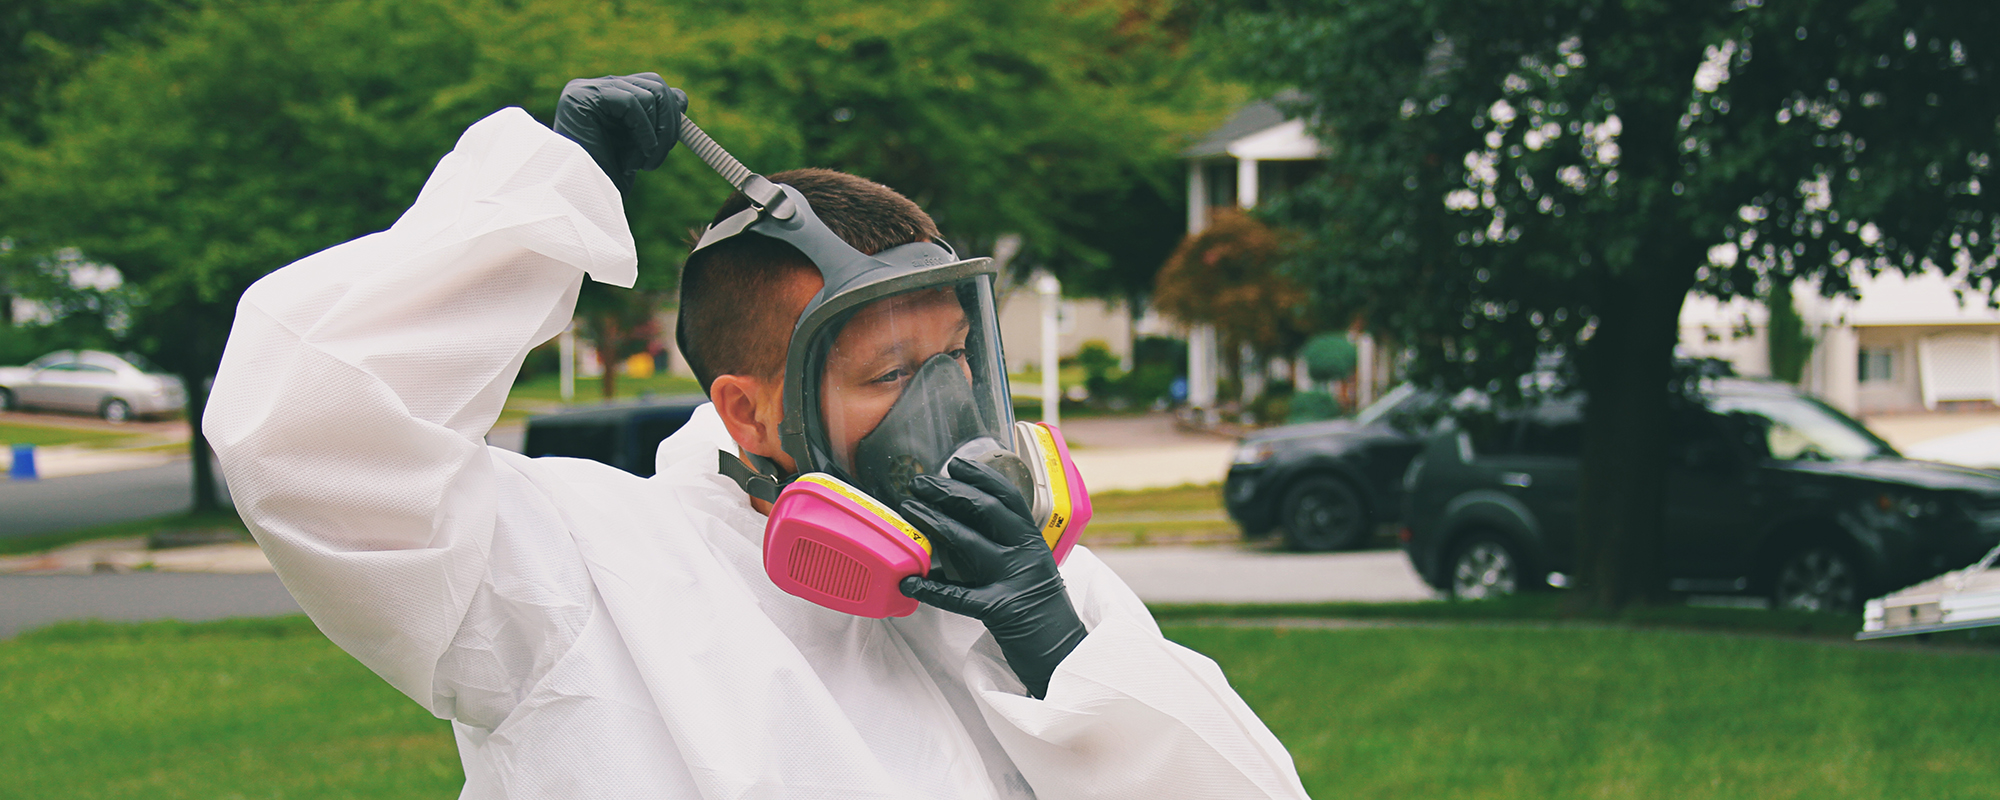 mold-remediation-chesterfield-nj